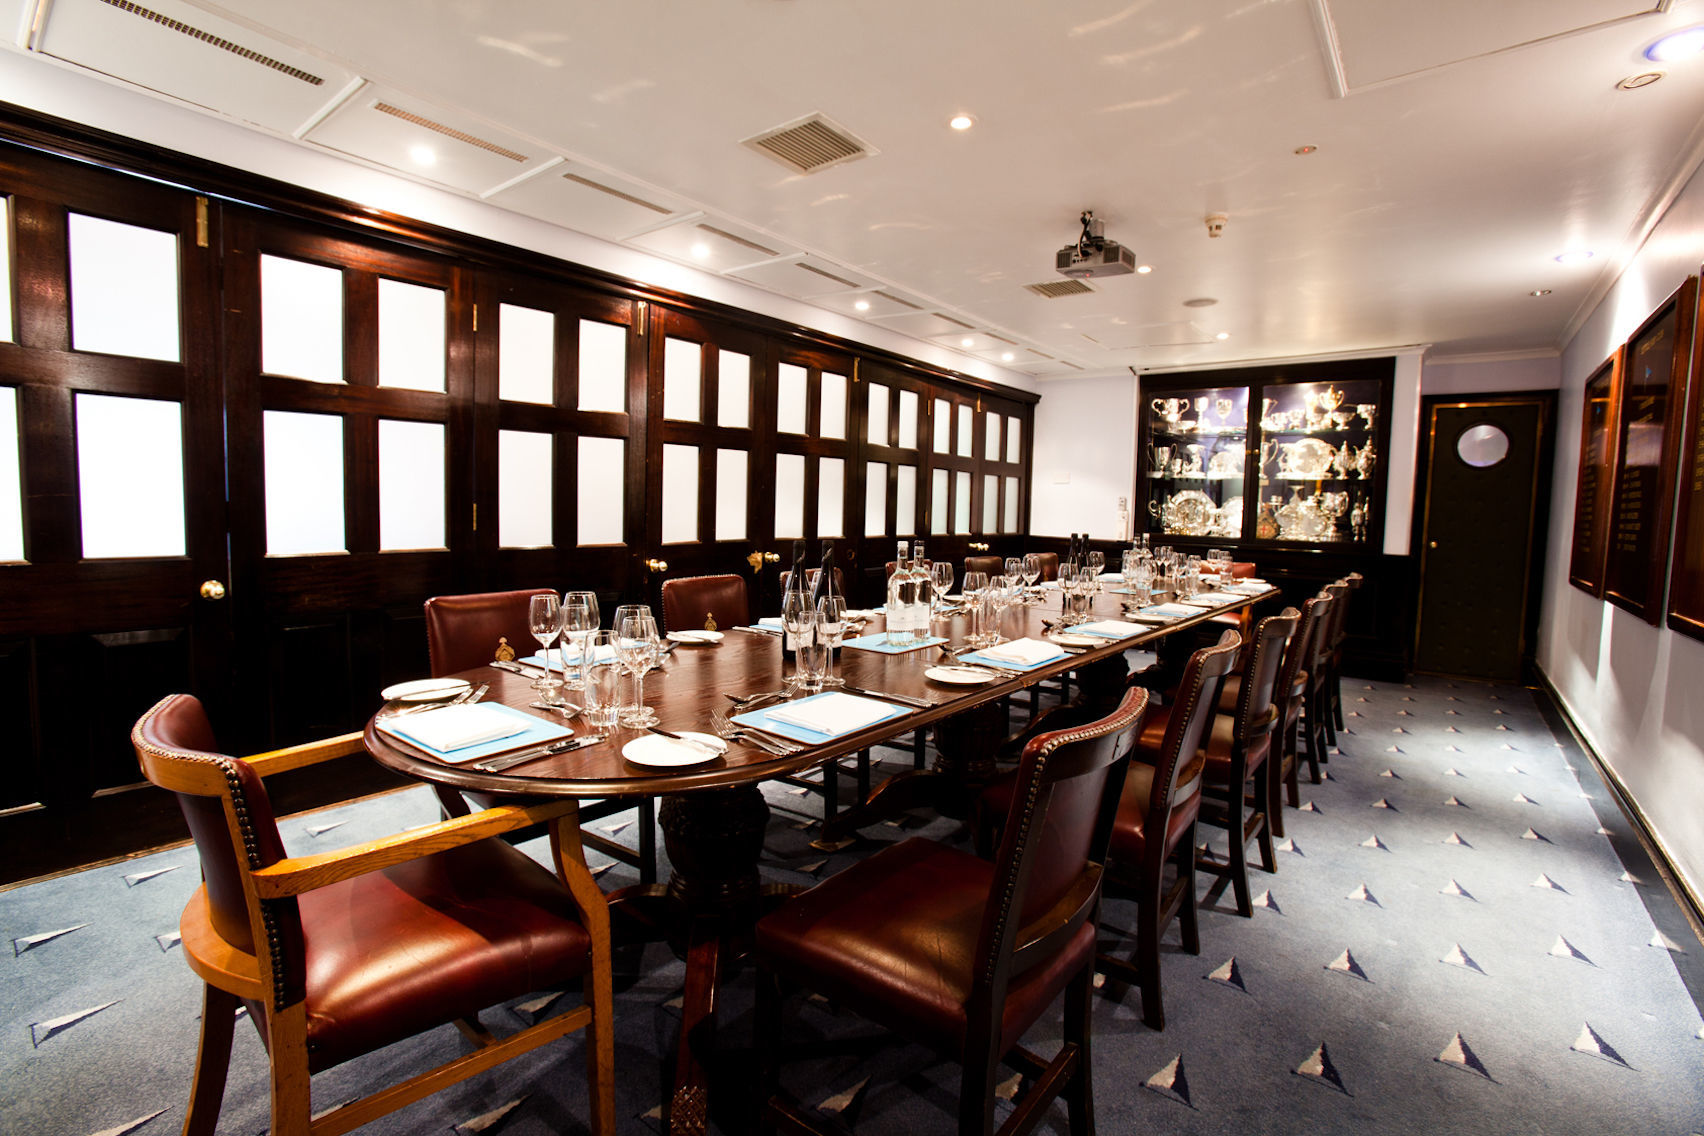 A private dining room with a dark wooden table and wood paneling on the walls